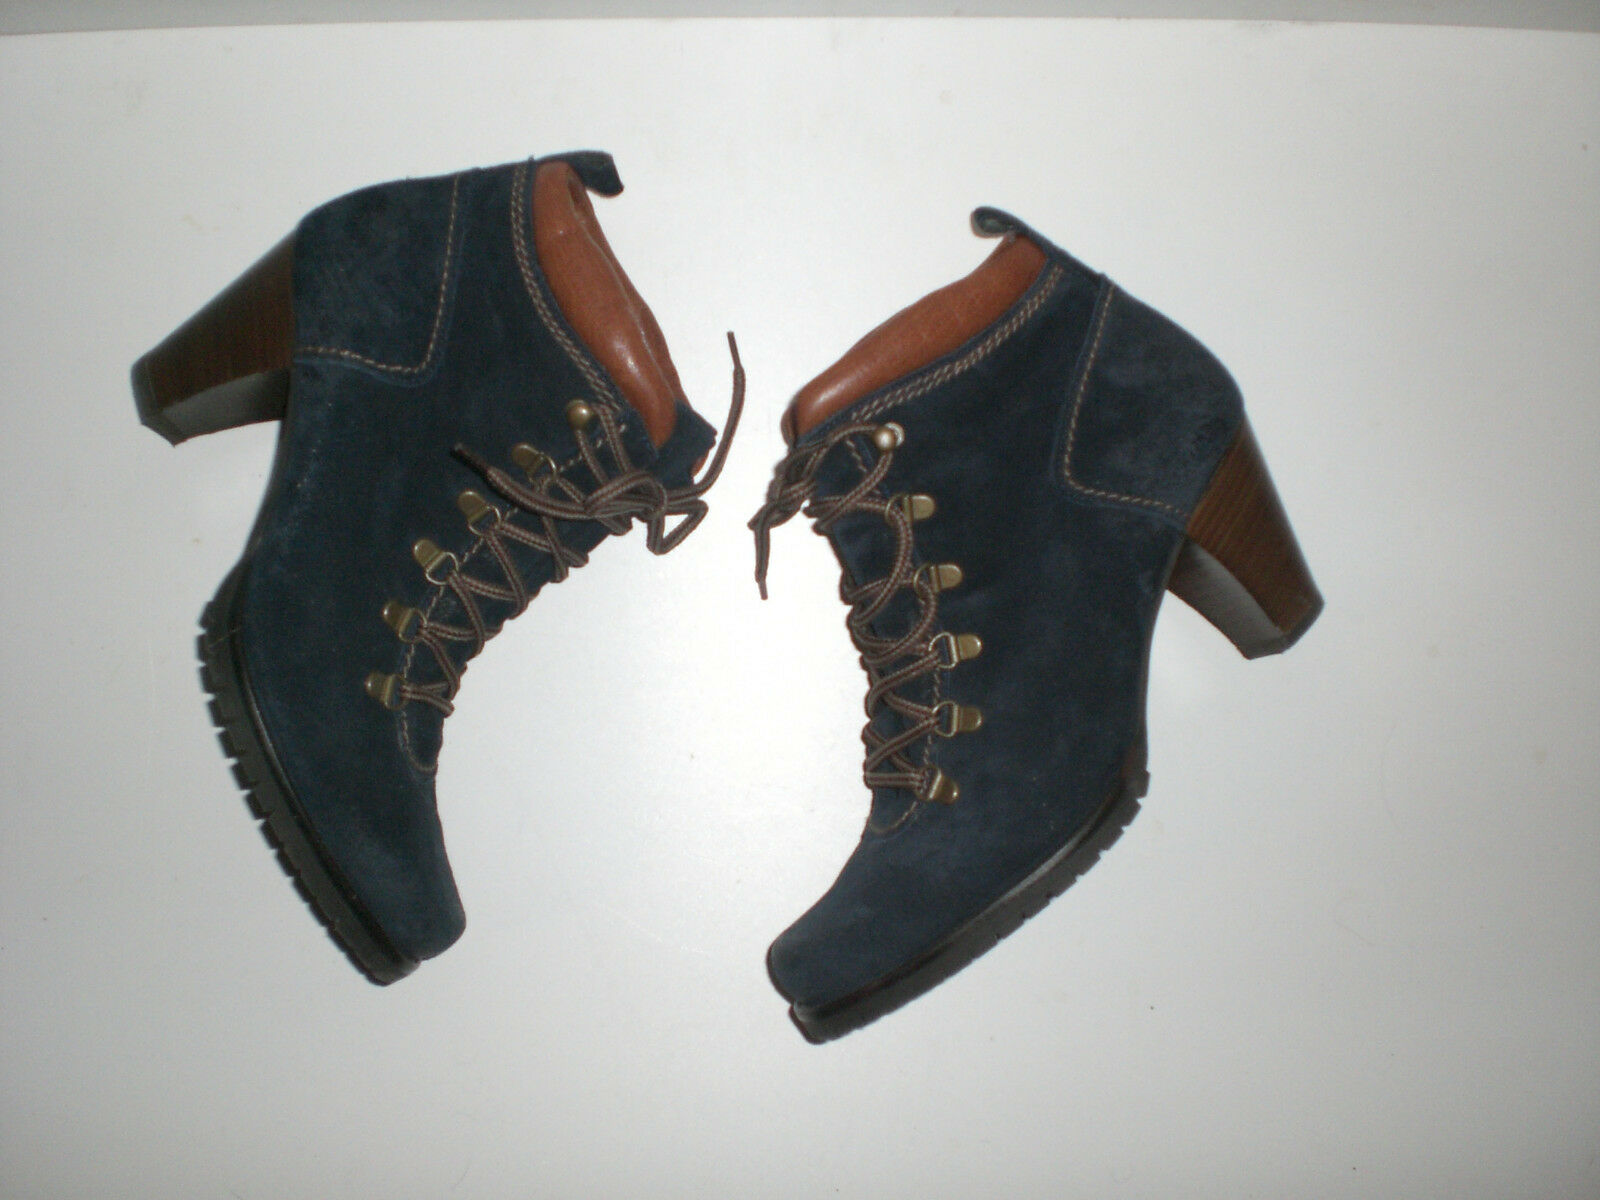 Paul Green Stiefeletten Boots in blau Gr.7